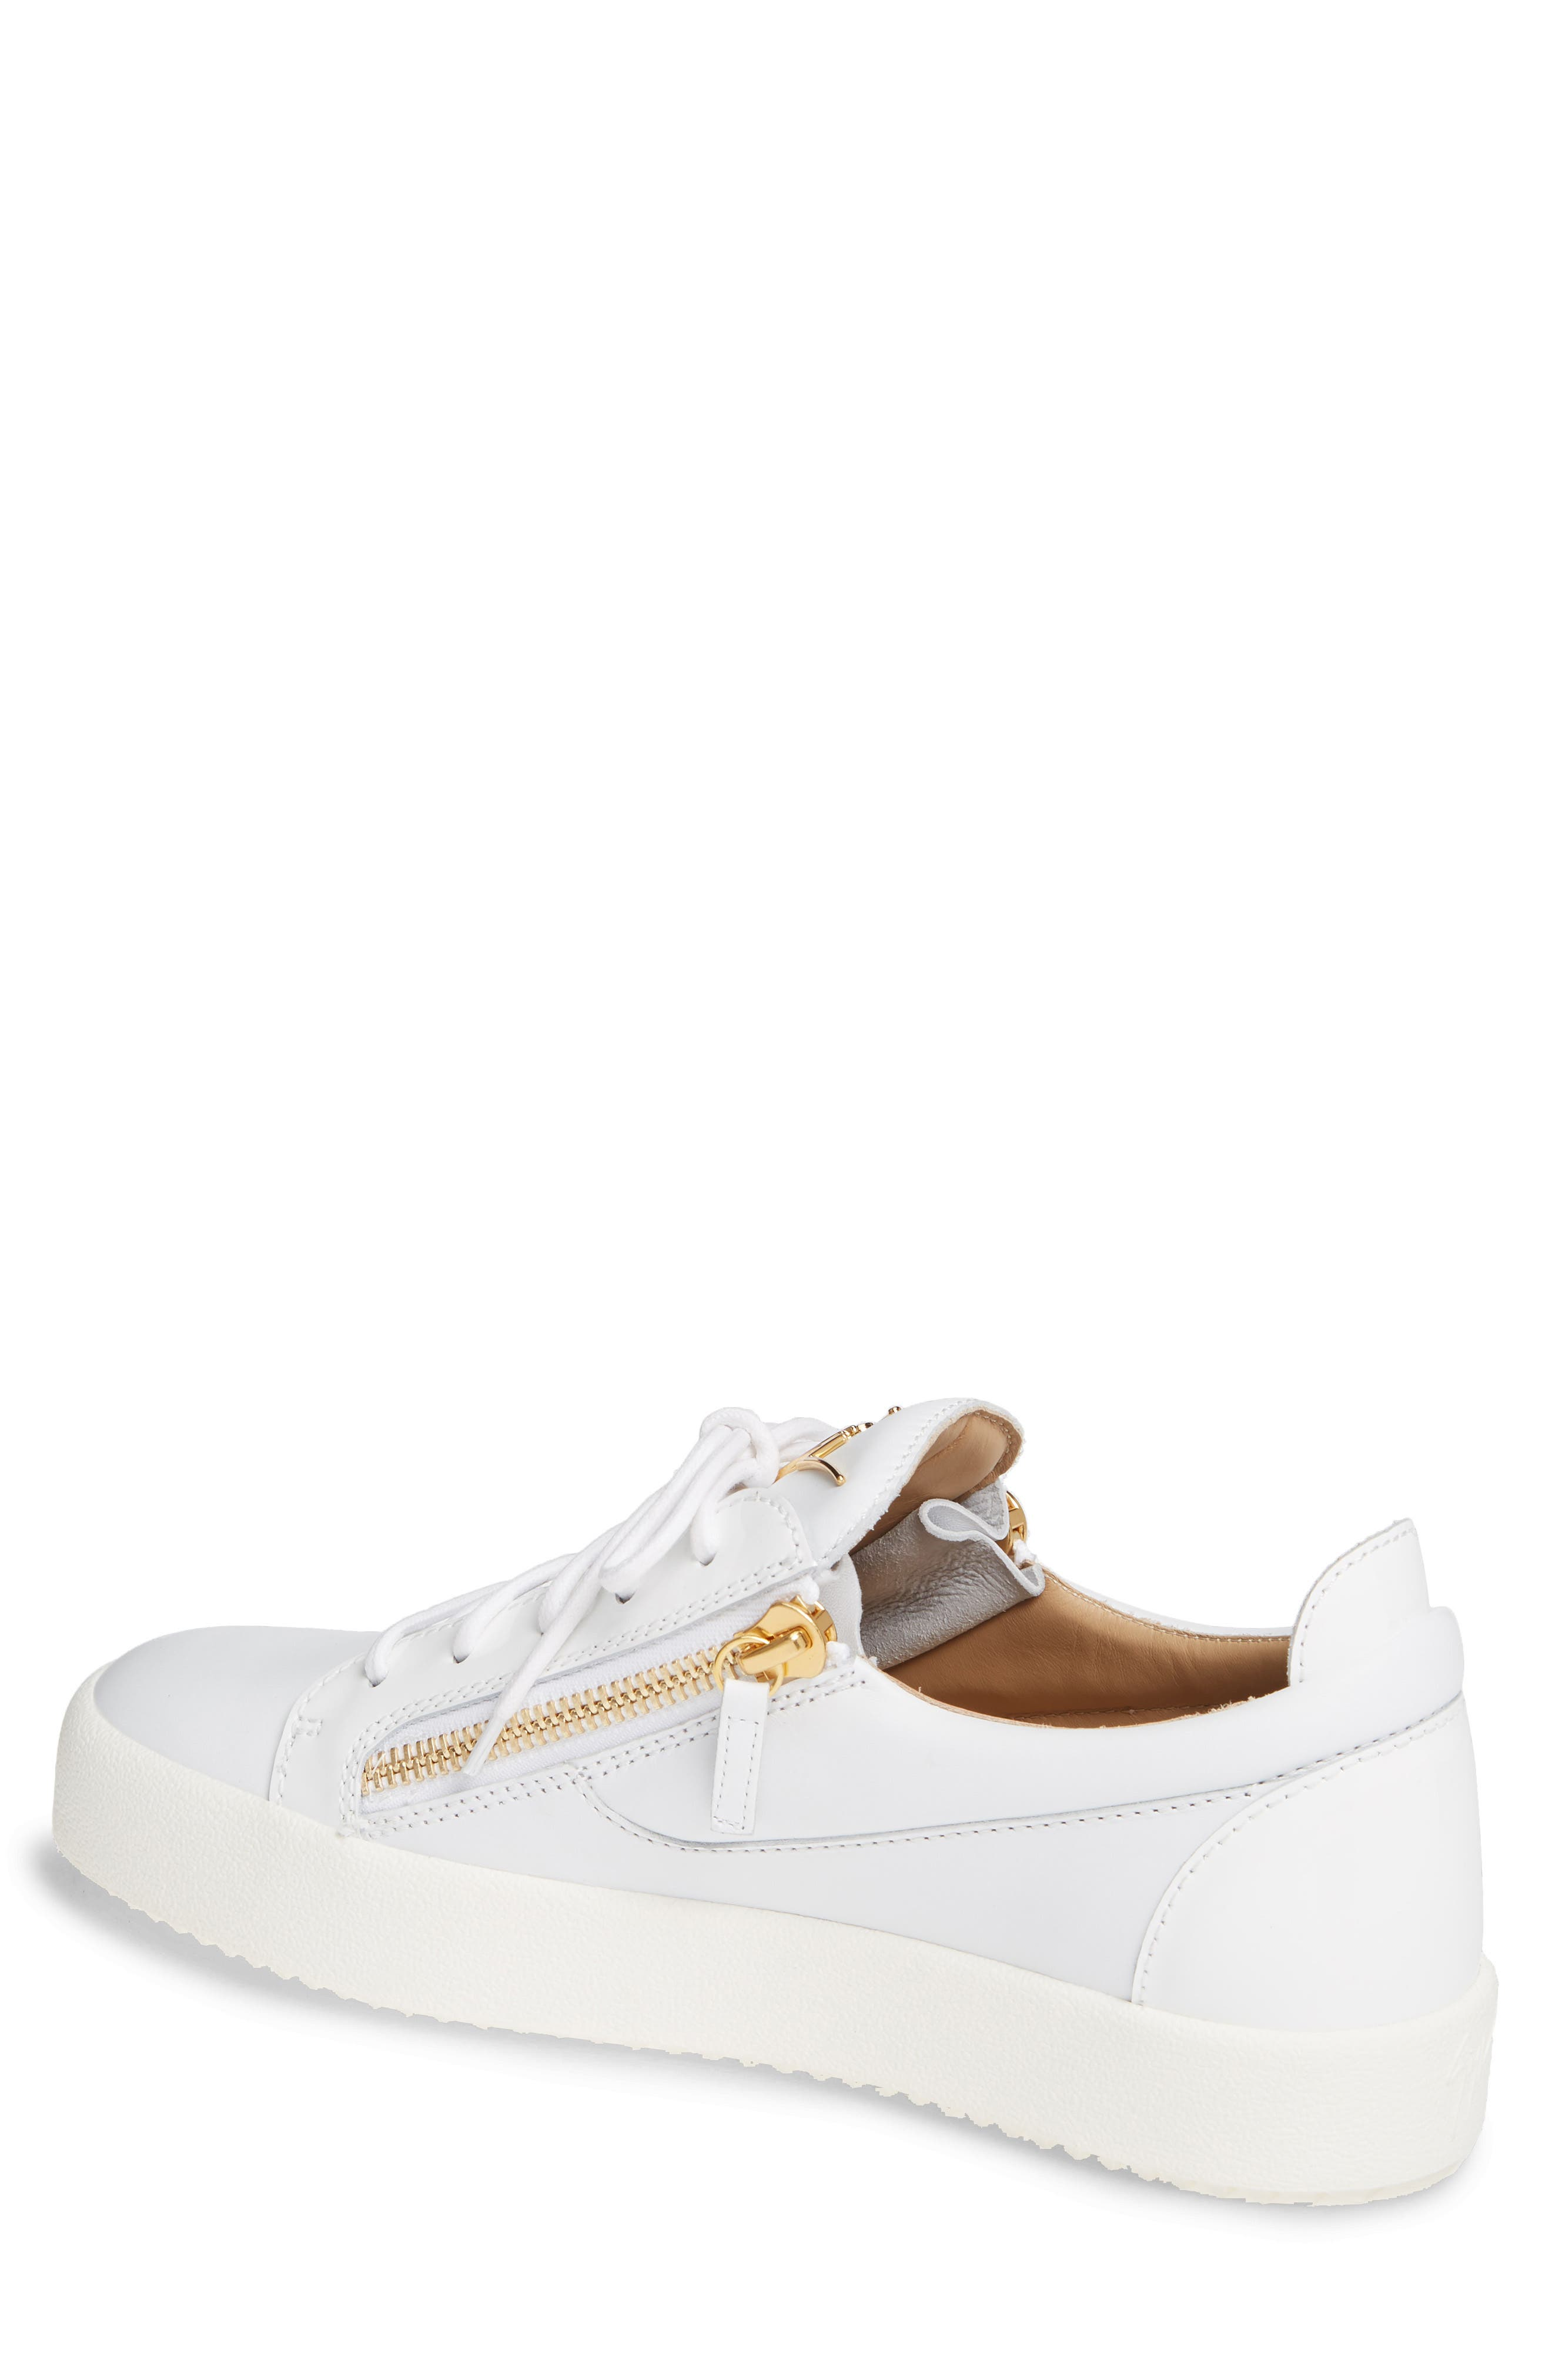 Low Top Sneaker,                             Alternate thumbnail 2, color,                             WHITE